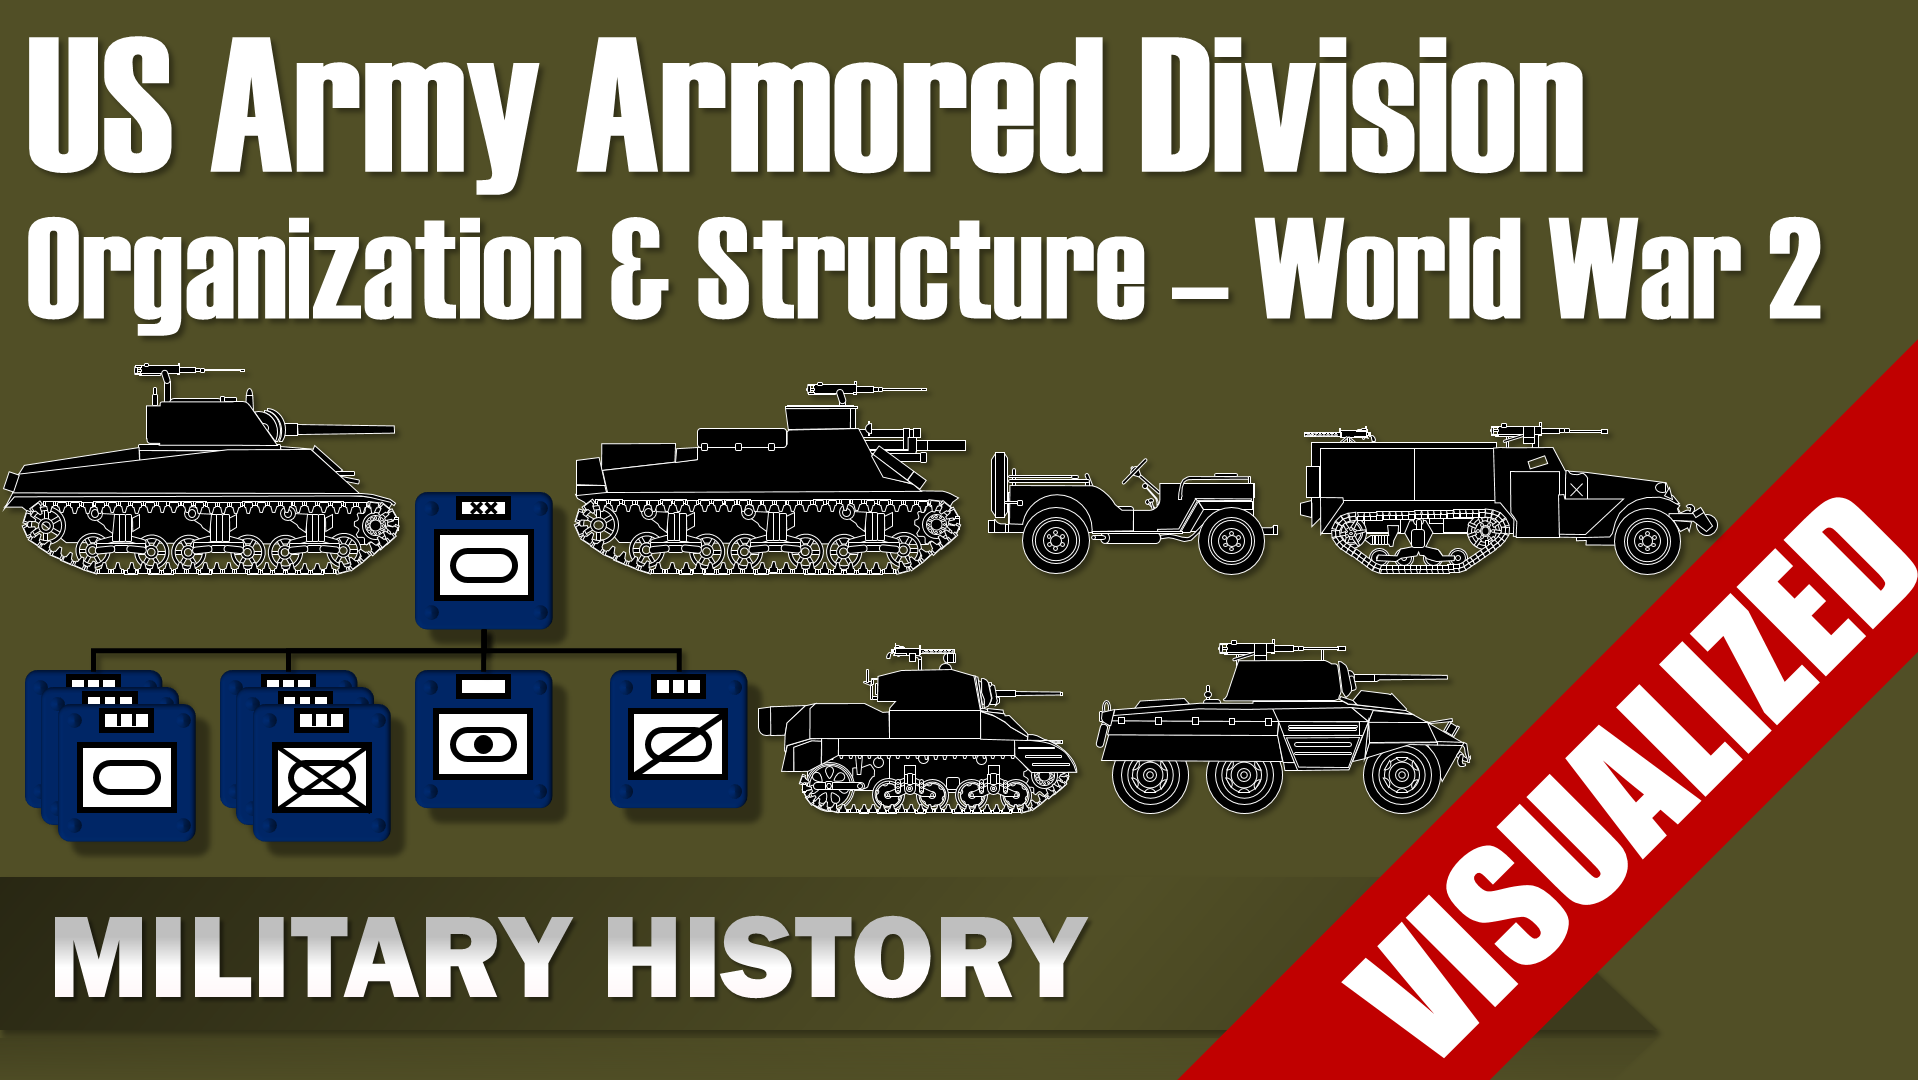 US Army Armored Division – Organization & Structure – World War 2 #Visualization